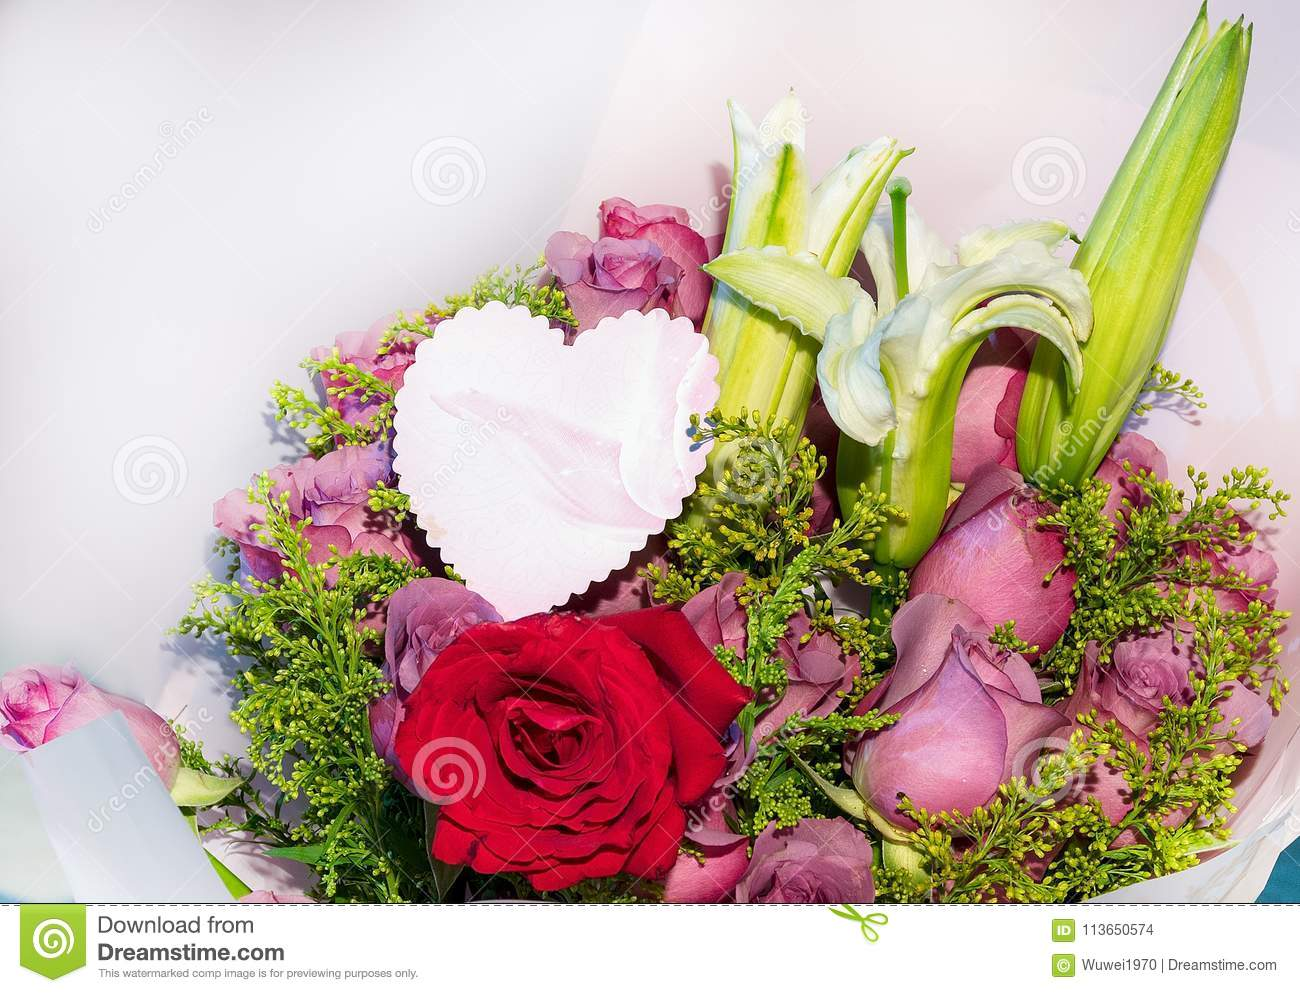 Bouquets with cards stock photo. Image of cards, relatives - 113650574